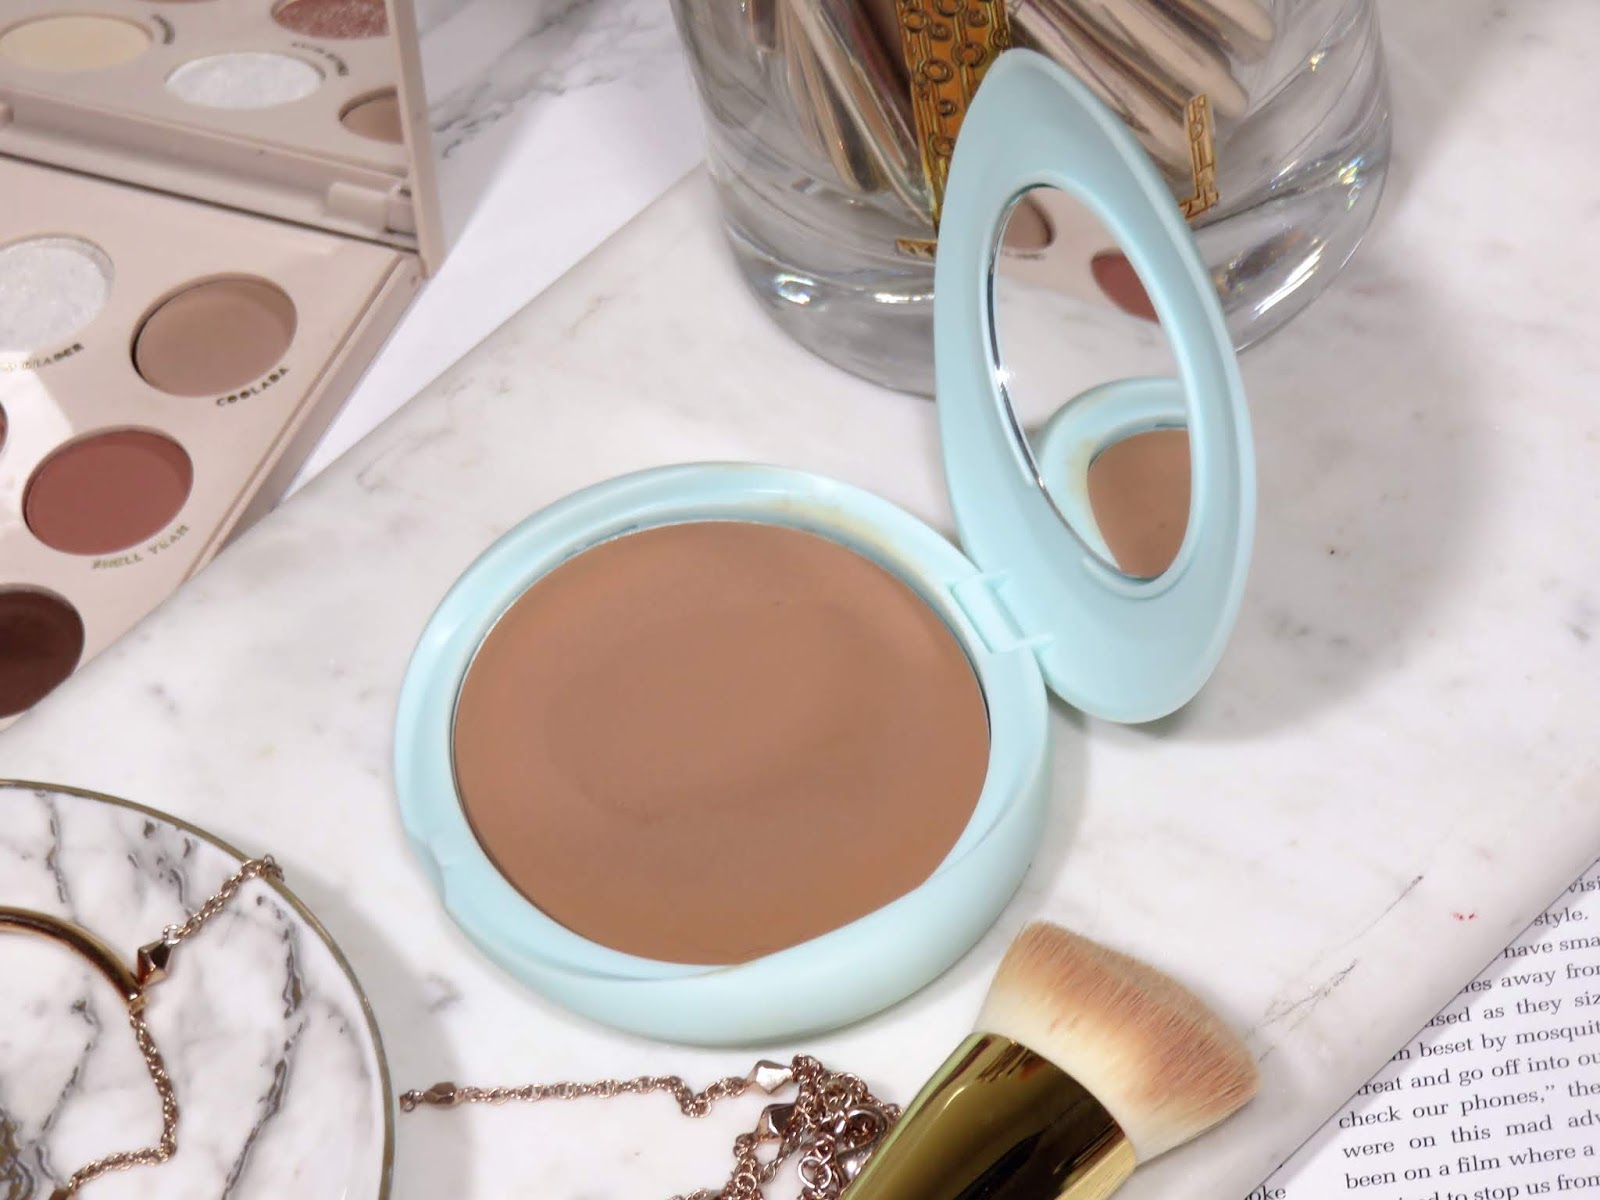 Tarte SEA Breezy Cream Bronzer Review & Swatches